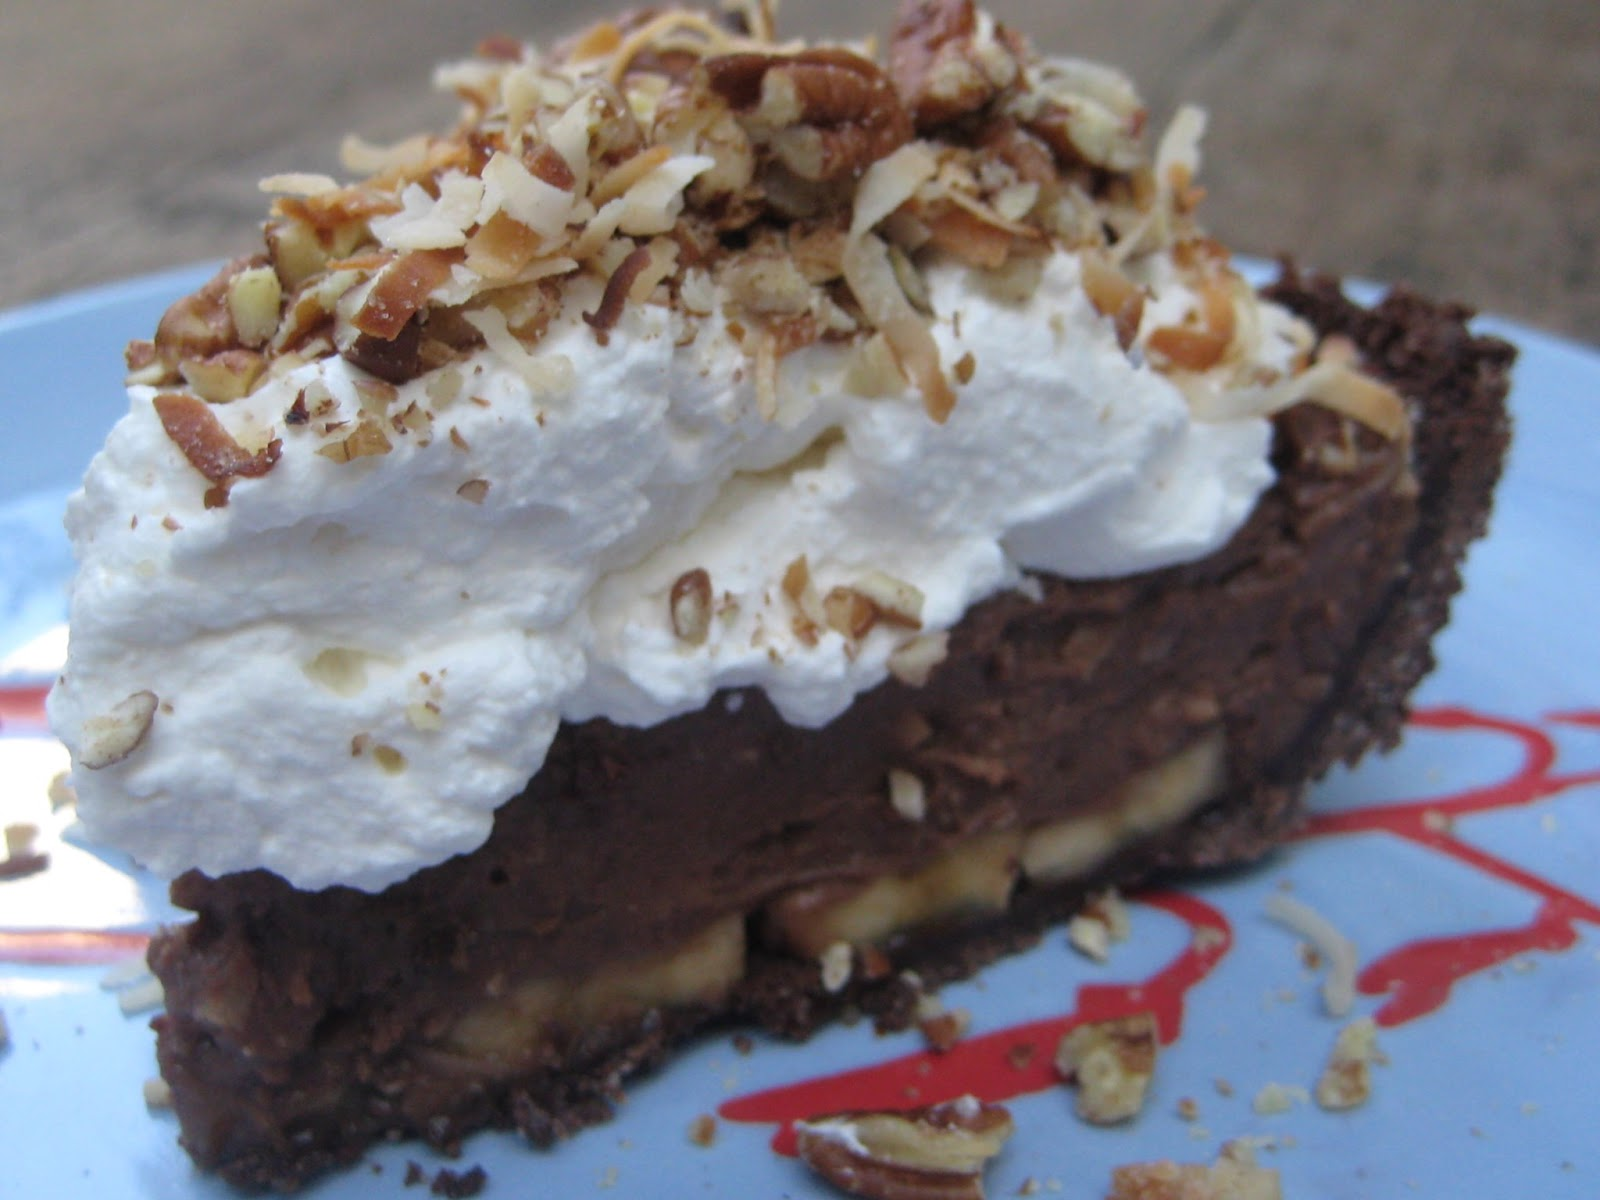 Pie Friday: NEW PIE ALERT!!! GERMAN CHOCOLATE BANANA CREAM!